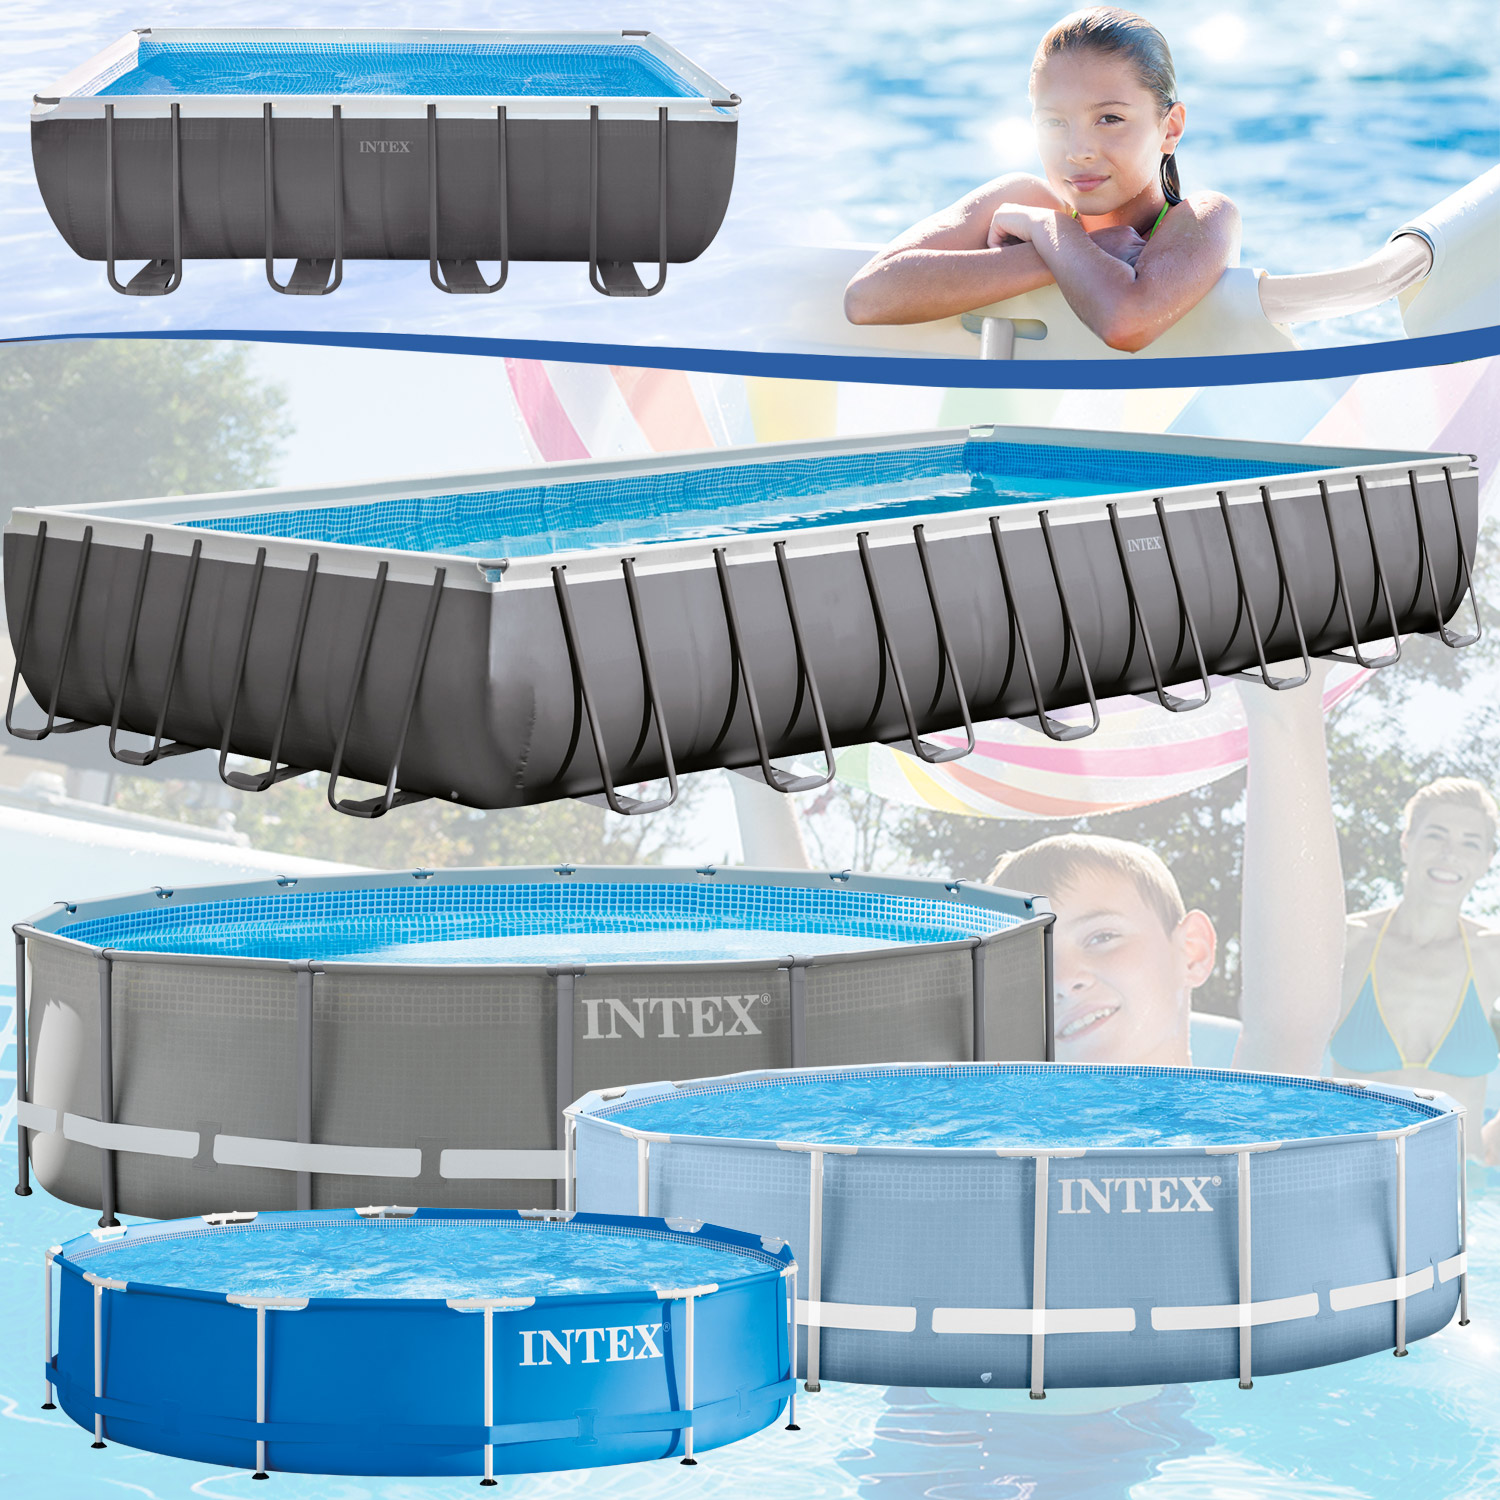 Intex frame stahlrohrbecken swimming pool schwimmbad for Pool 457x122 mit sandfilteranlage